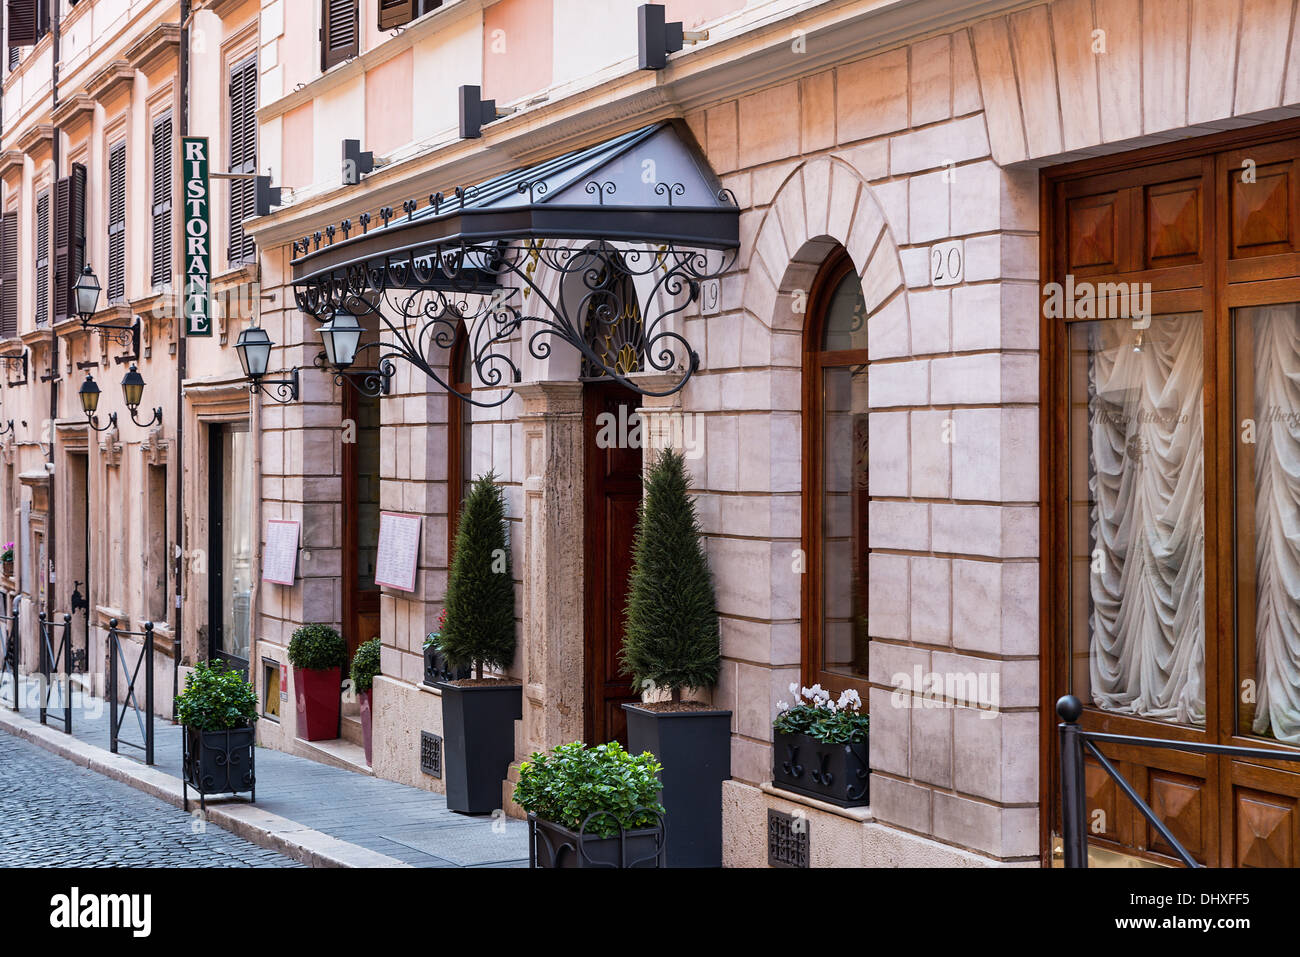 Facade Of Italian Restaurant On A Quaint Street Rome Italy Stock Photo Alamy